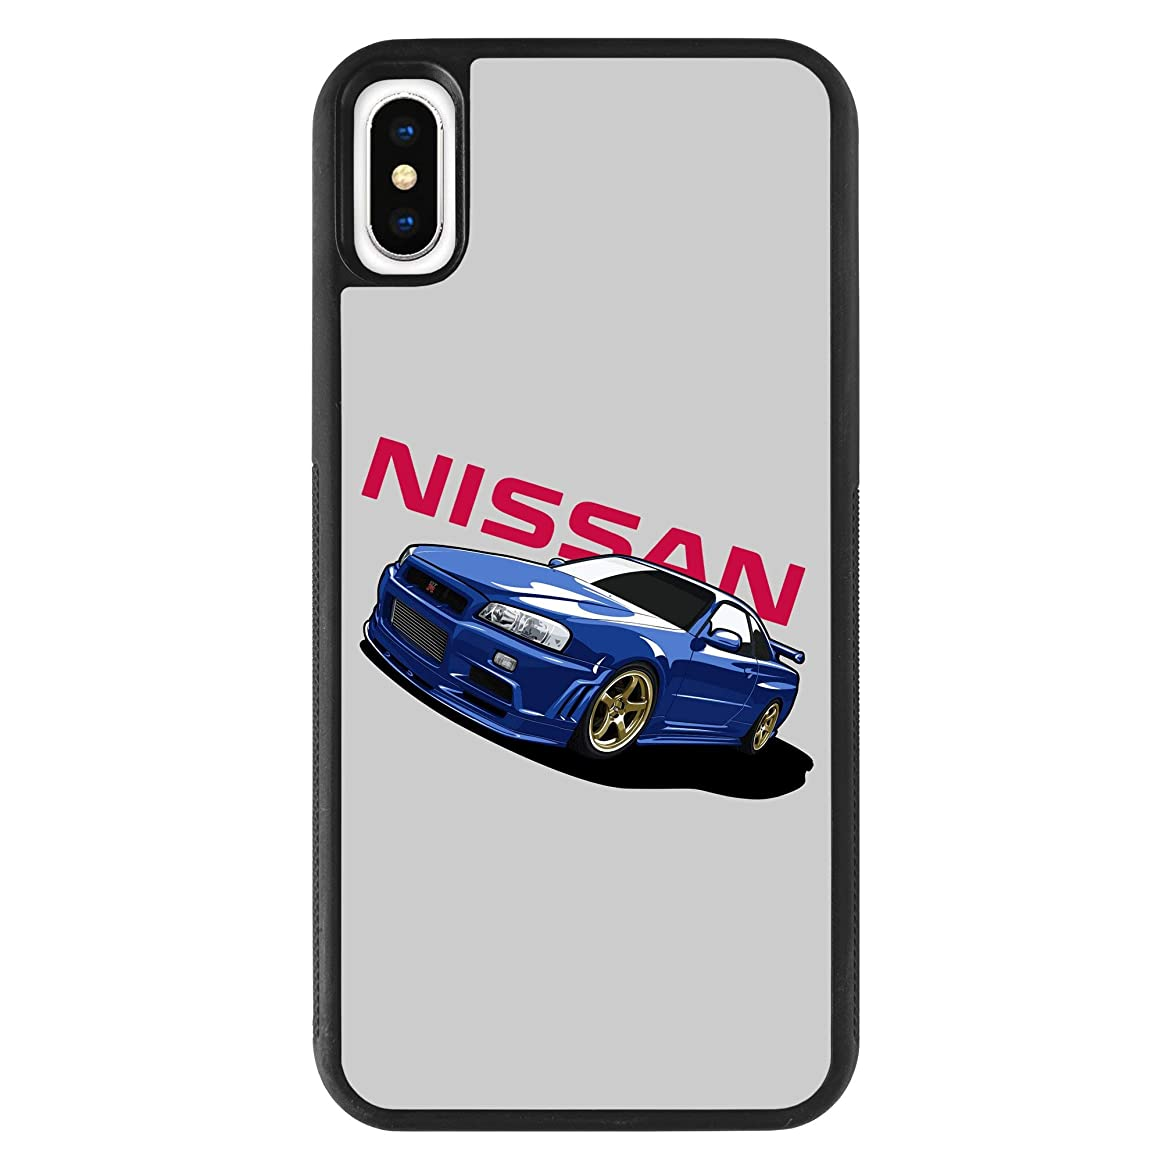 Nissan GT-R R34 Phone Case (iPhone X Max)